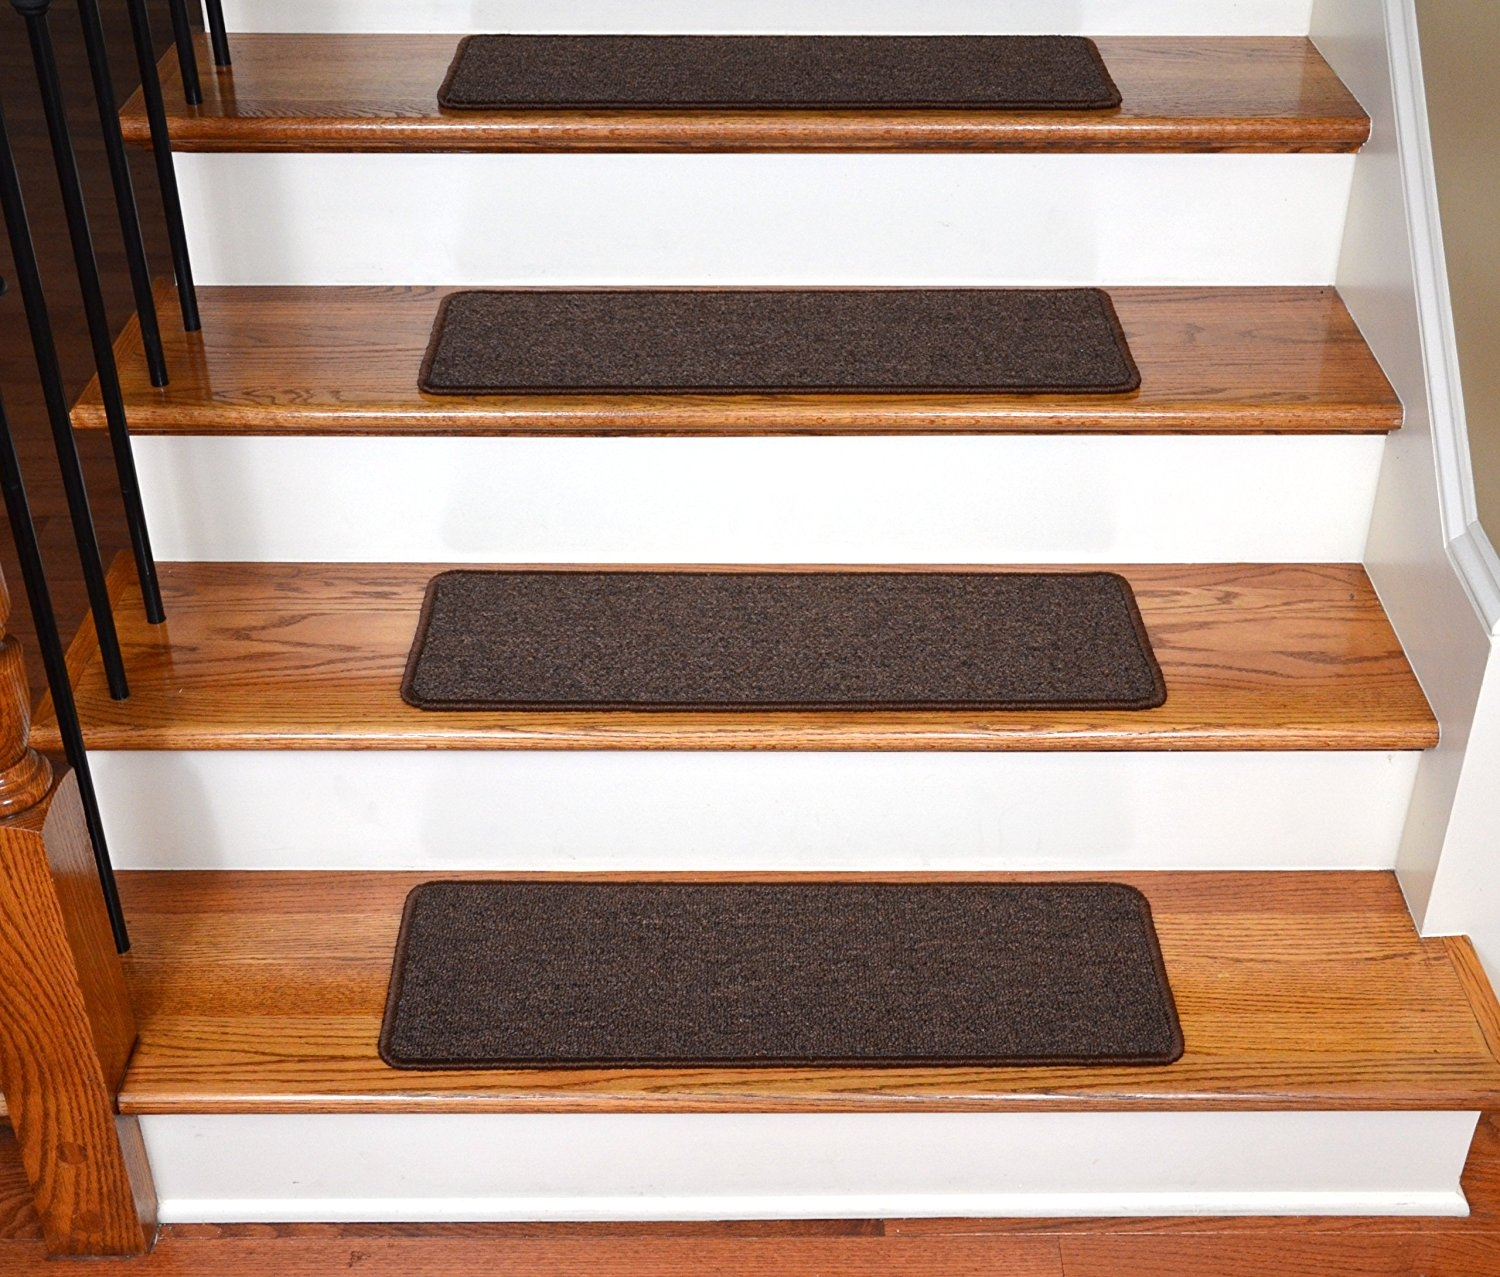 Dean Serged Diy 27 X 9 Imperial Carpet Stair Treads 13 With Pertaining To Non Skid Stair Treads Carpet (#7 of 20)